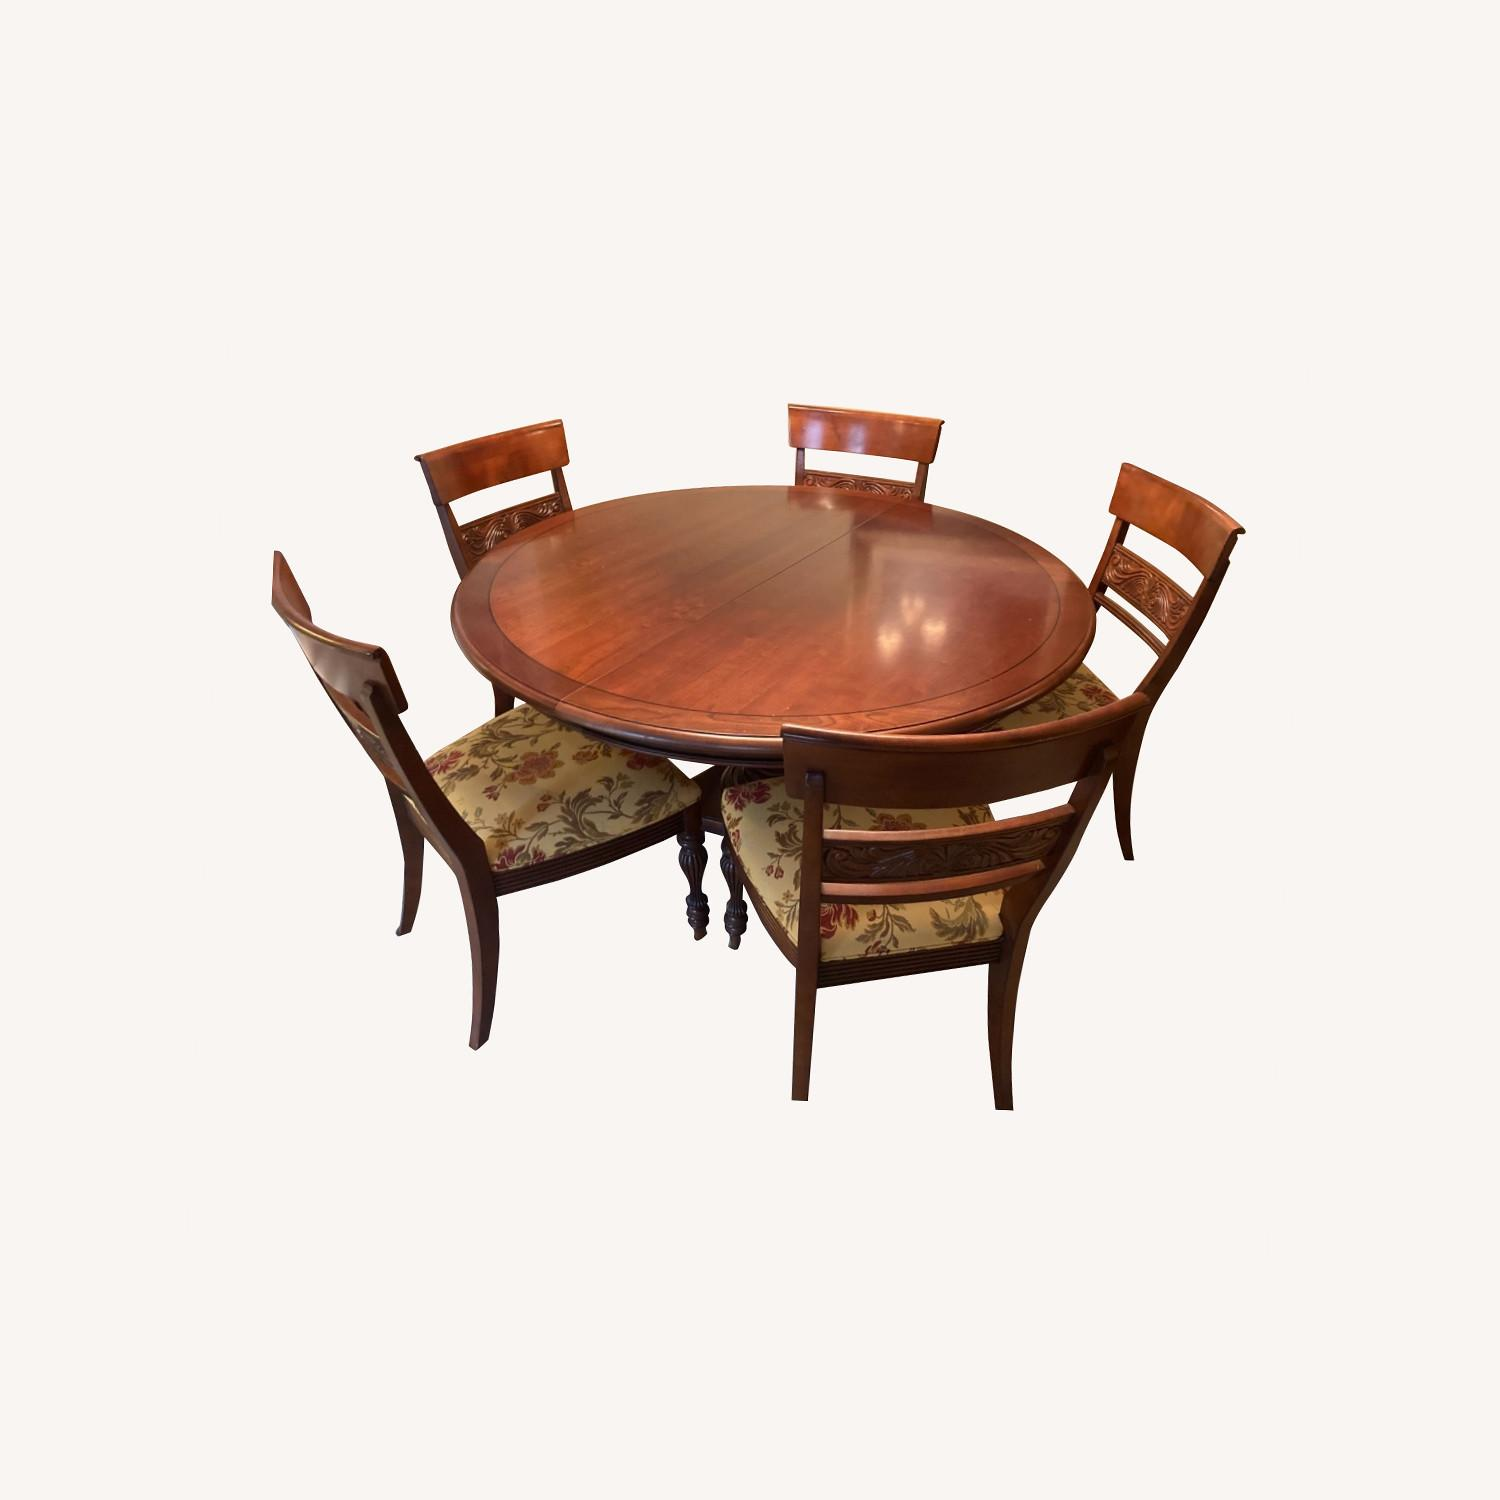 Ethan Allen Dining Room Table With 5 Chairs - image-0